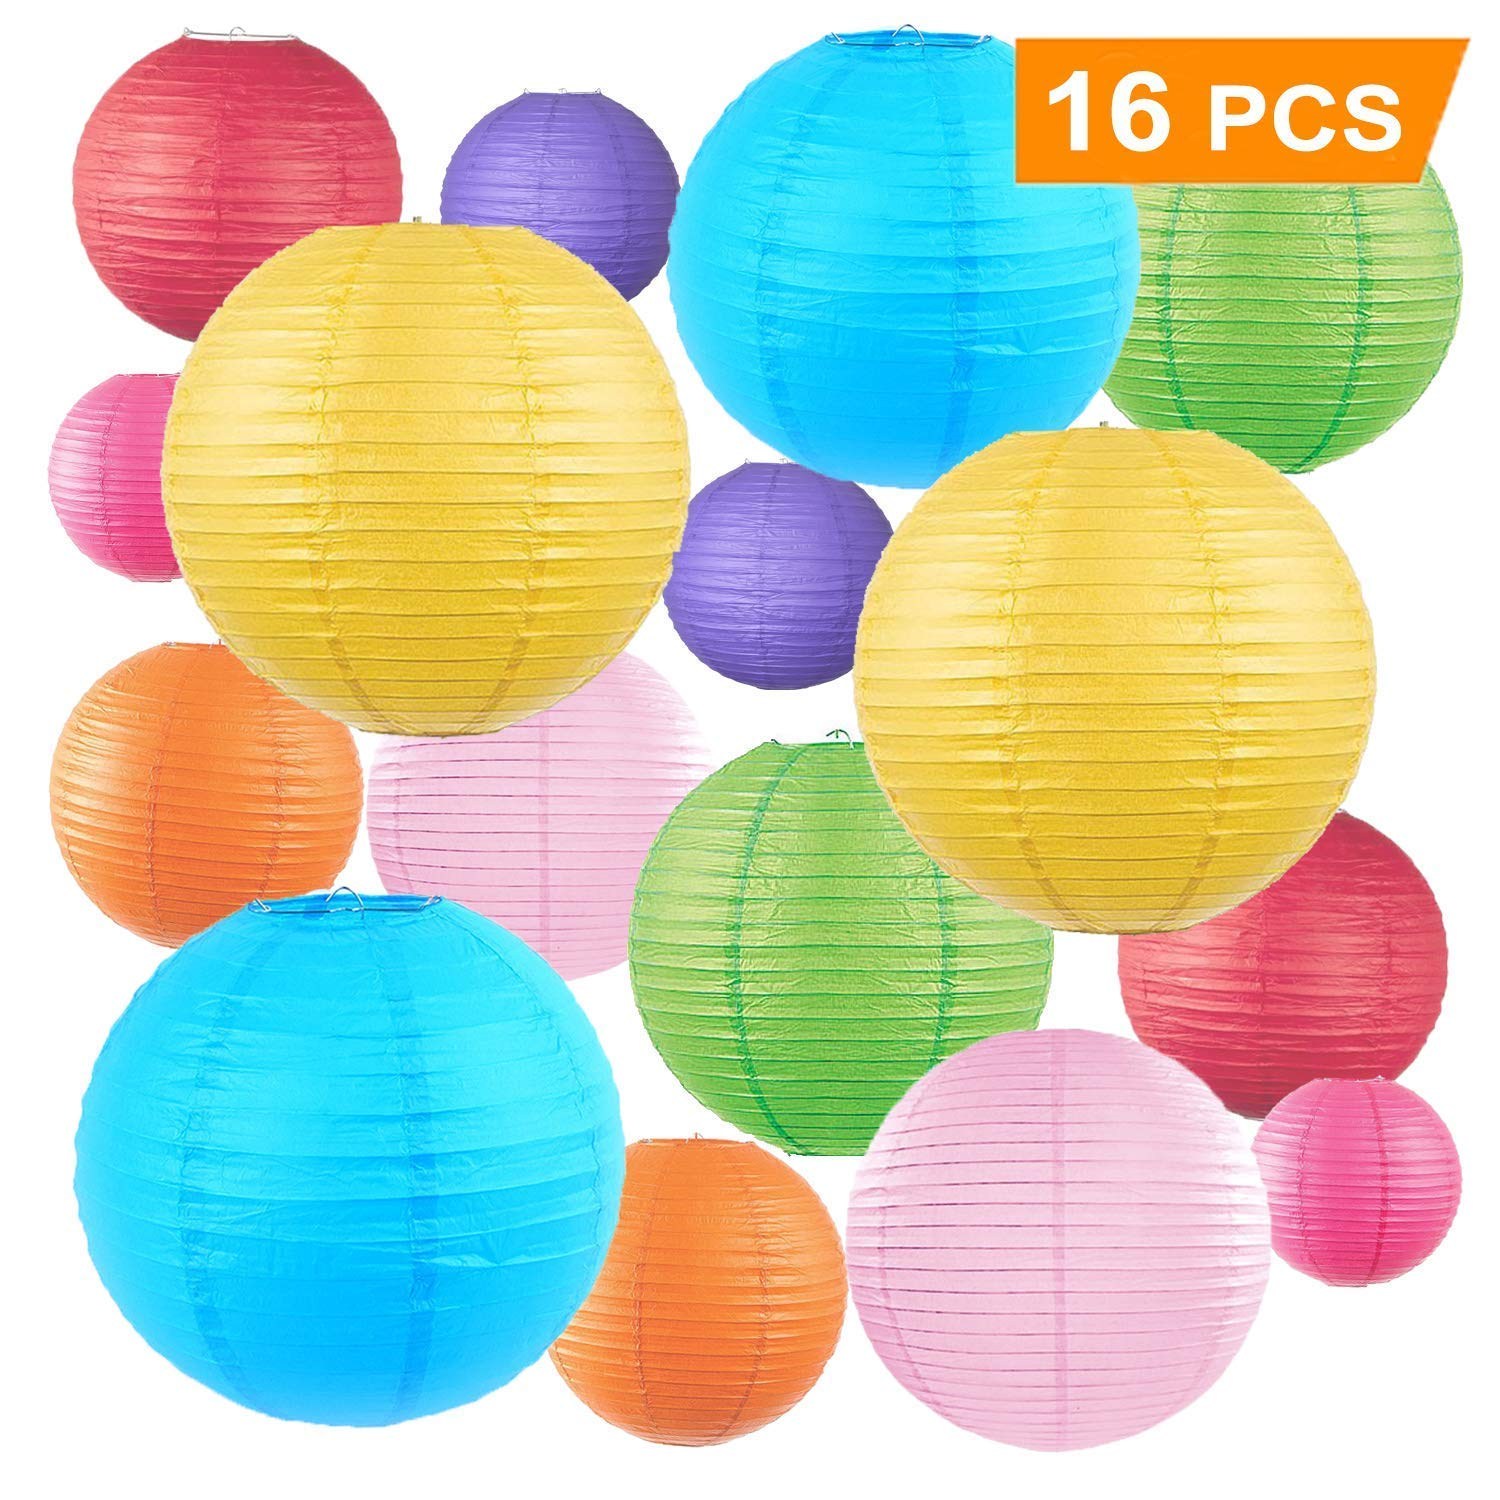 "16 Pcs Colorful Paper Lanterns Lampshade (Multicolor, Size of 4"", 6"", 8"", 10"") - Chinese/Japanese Paper Hanging Decorations Ball Lanterns Lamps for Home Decor, Parties, and Weddings Size of 4"